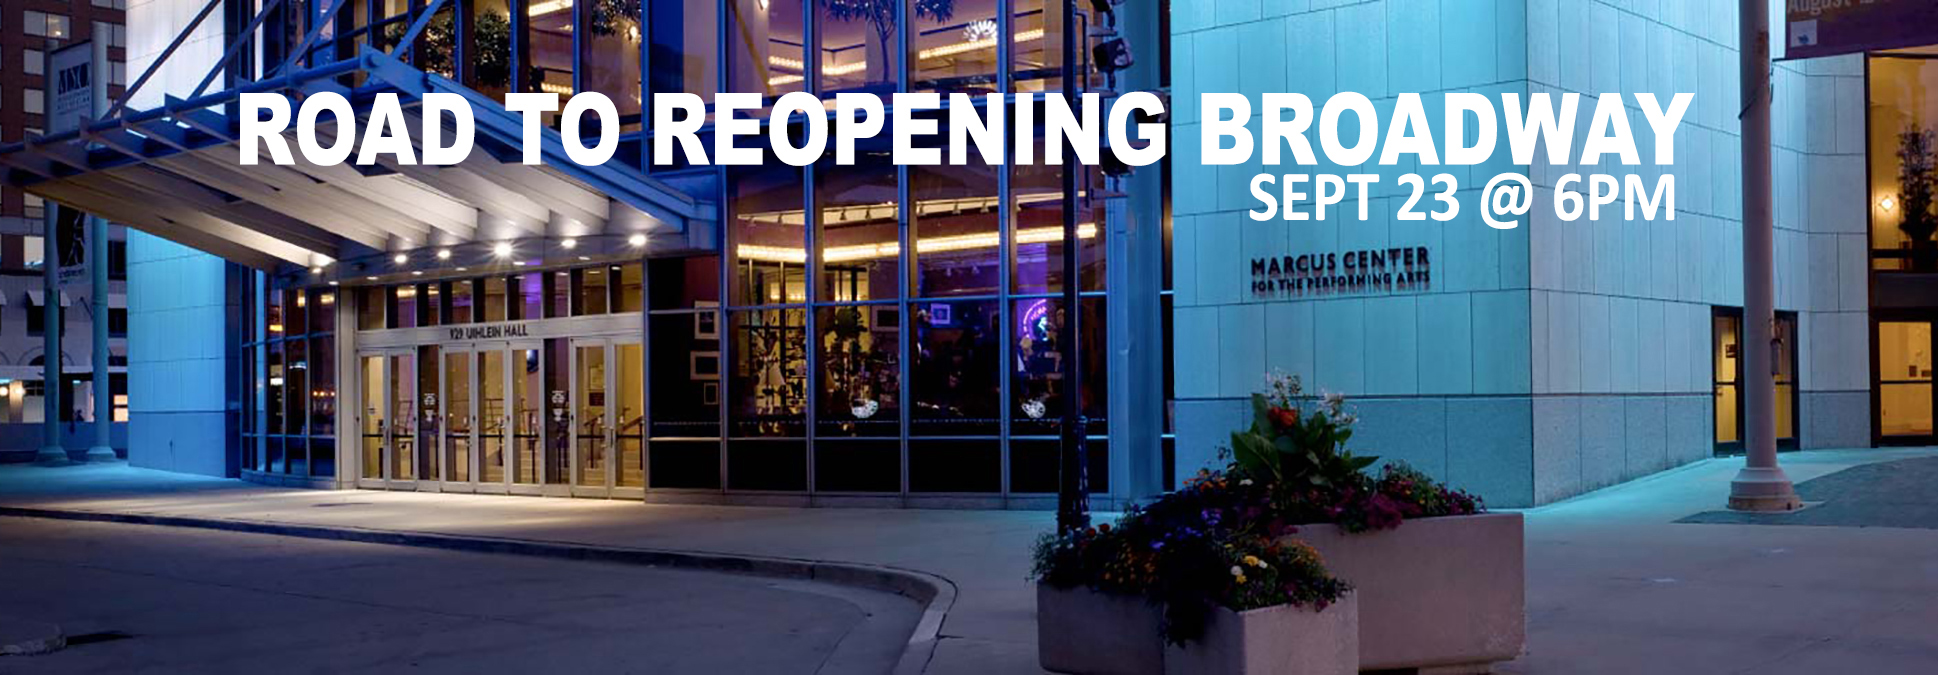 Marcus Center Road To Recovery Broadway Milwaukee